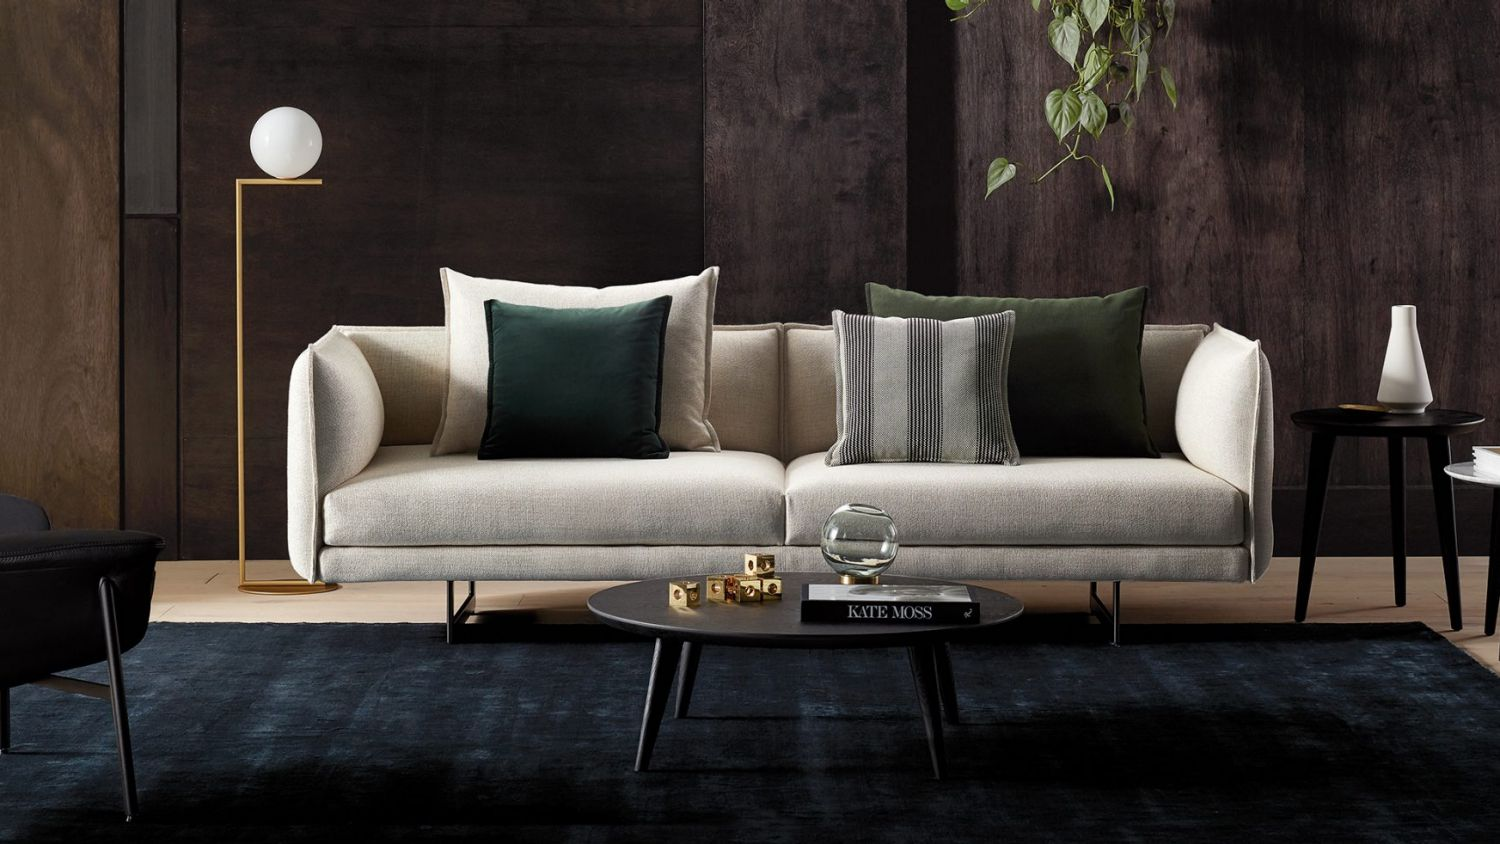 Designer Couch Klein Fabric Versus Leather How To Choose A Sofa That S Right For You